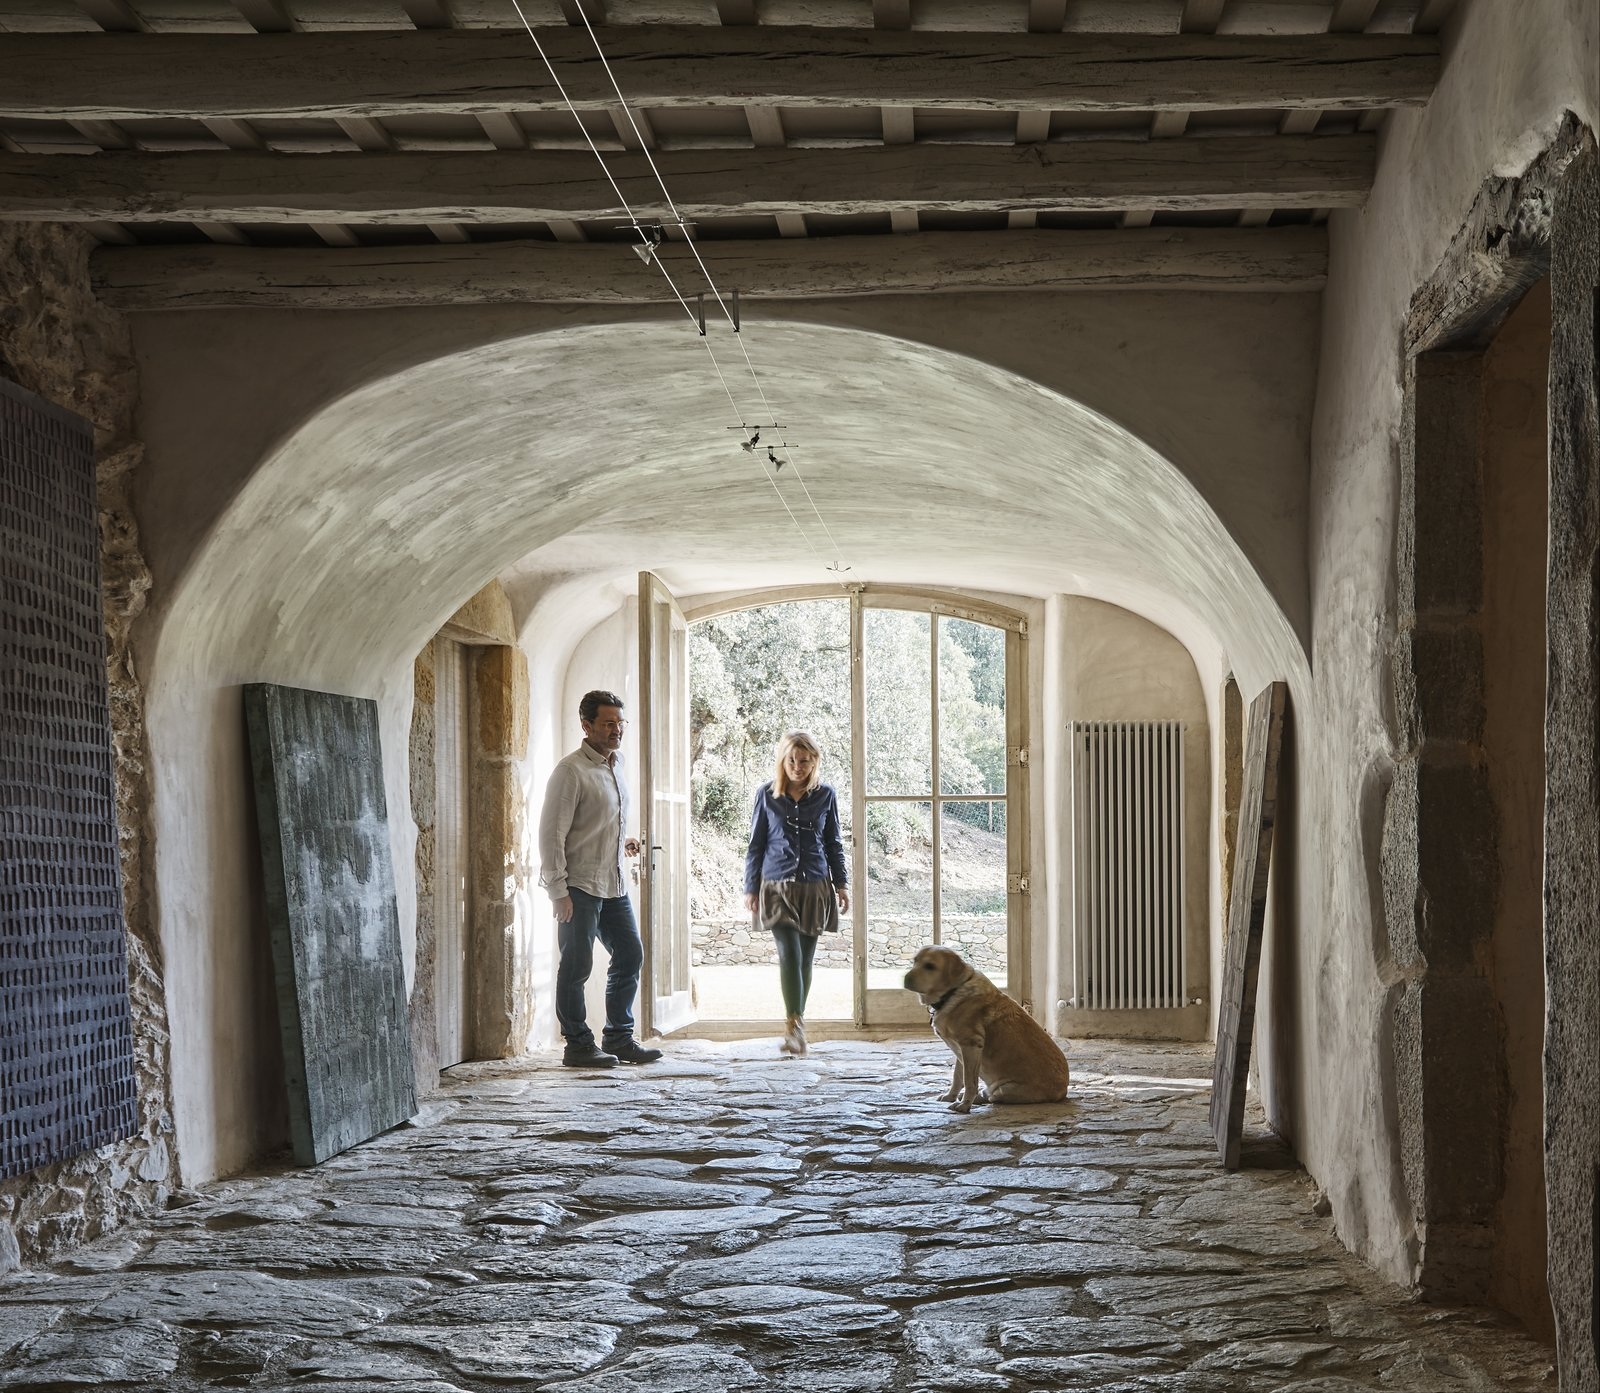 Joan Lao, Adalina Coromines, and Africa Lao Turn an Old Spanish Farmhouse Into an Incredible Home